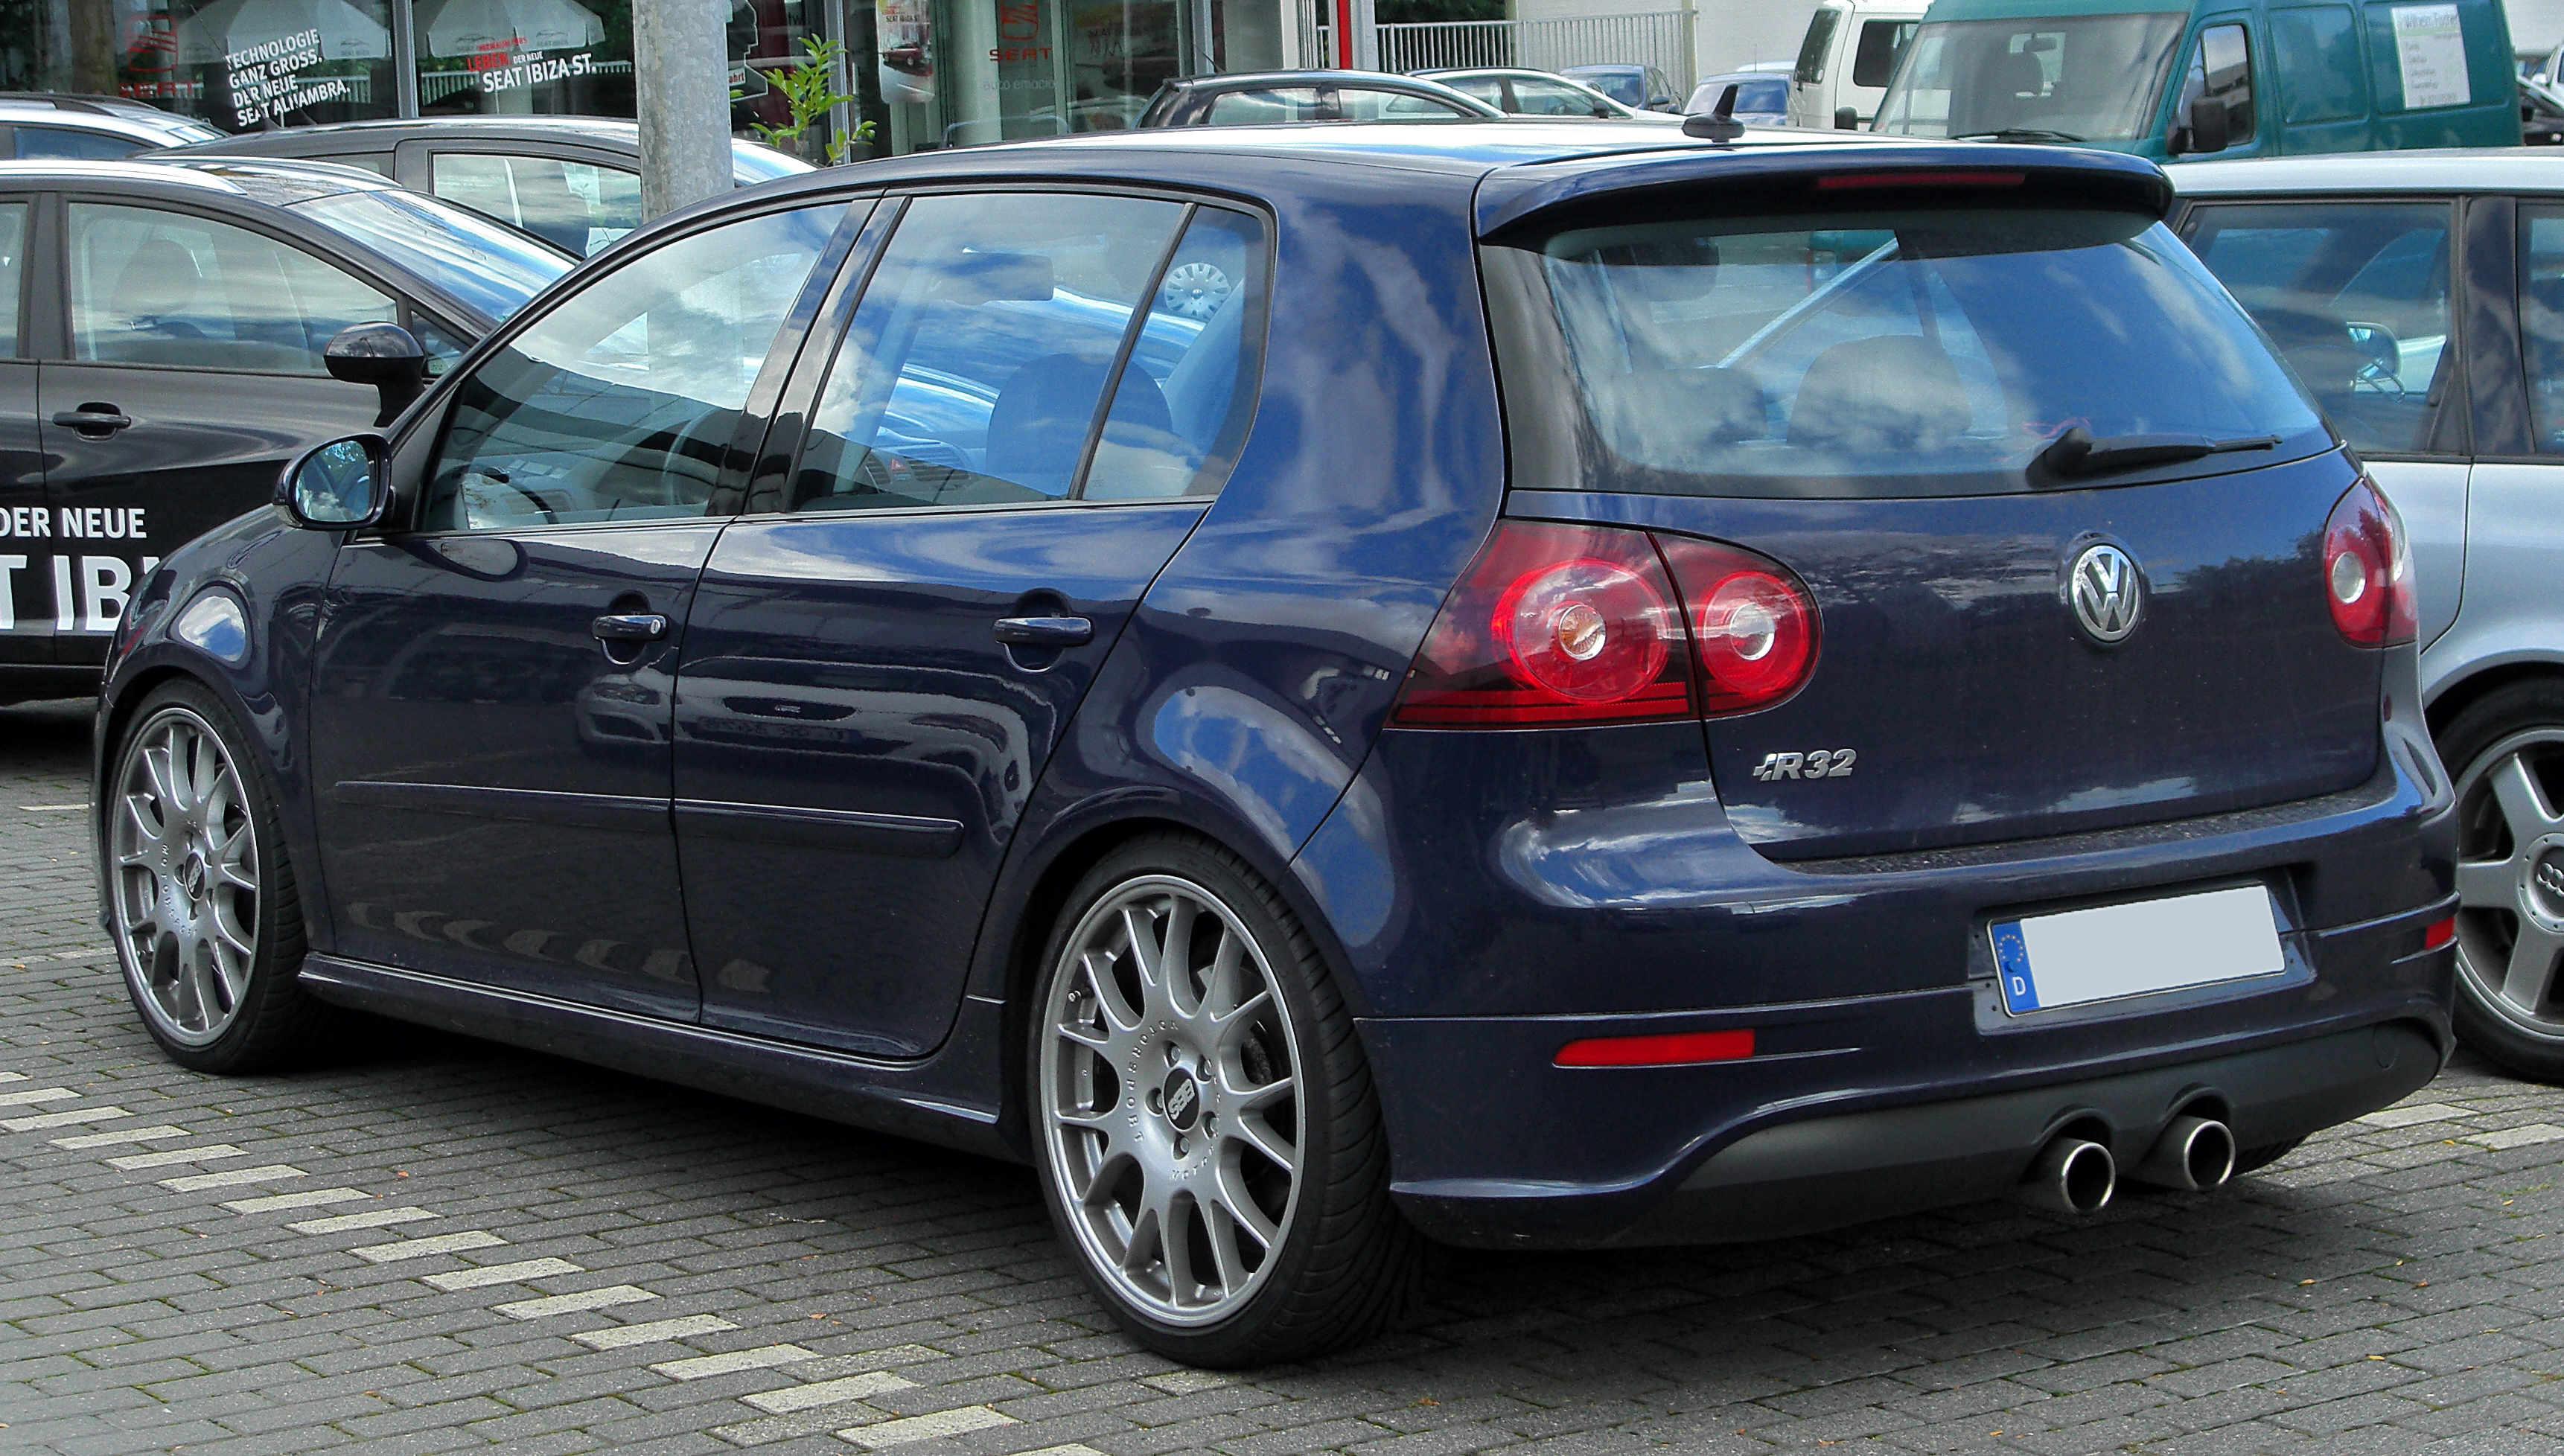 file vw golf v r32 rear wikimedia commons. Black Bedroom Furniture Sets. Home Design Ideas